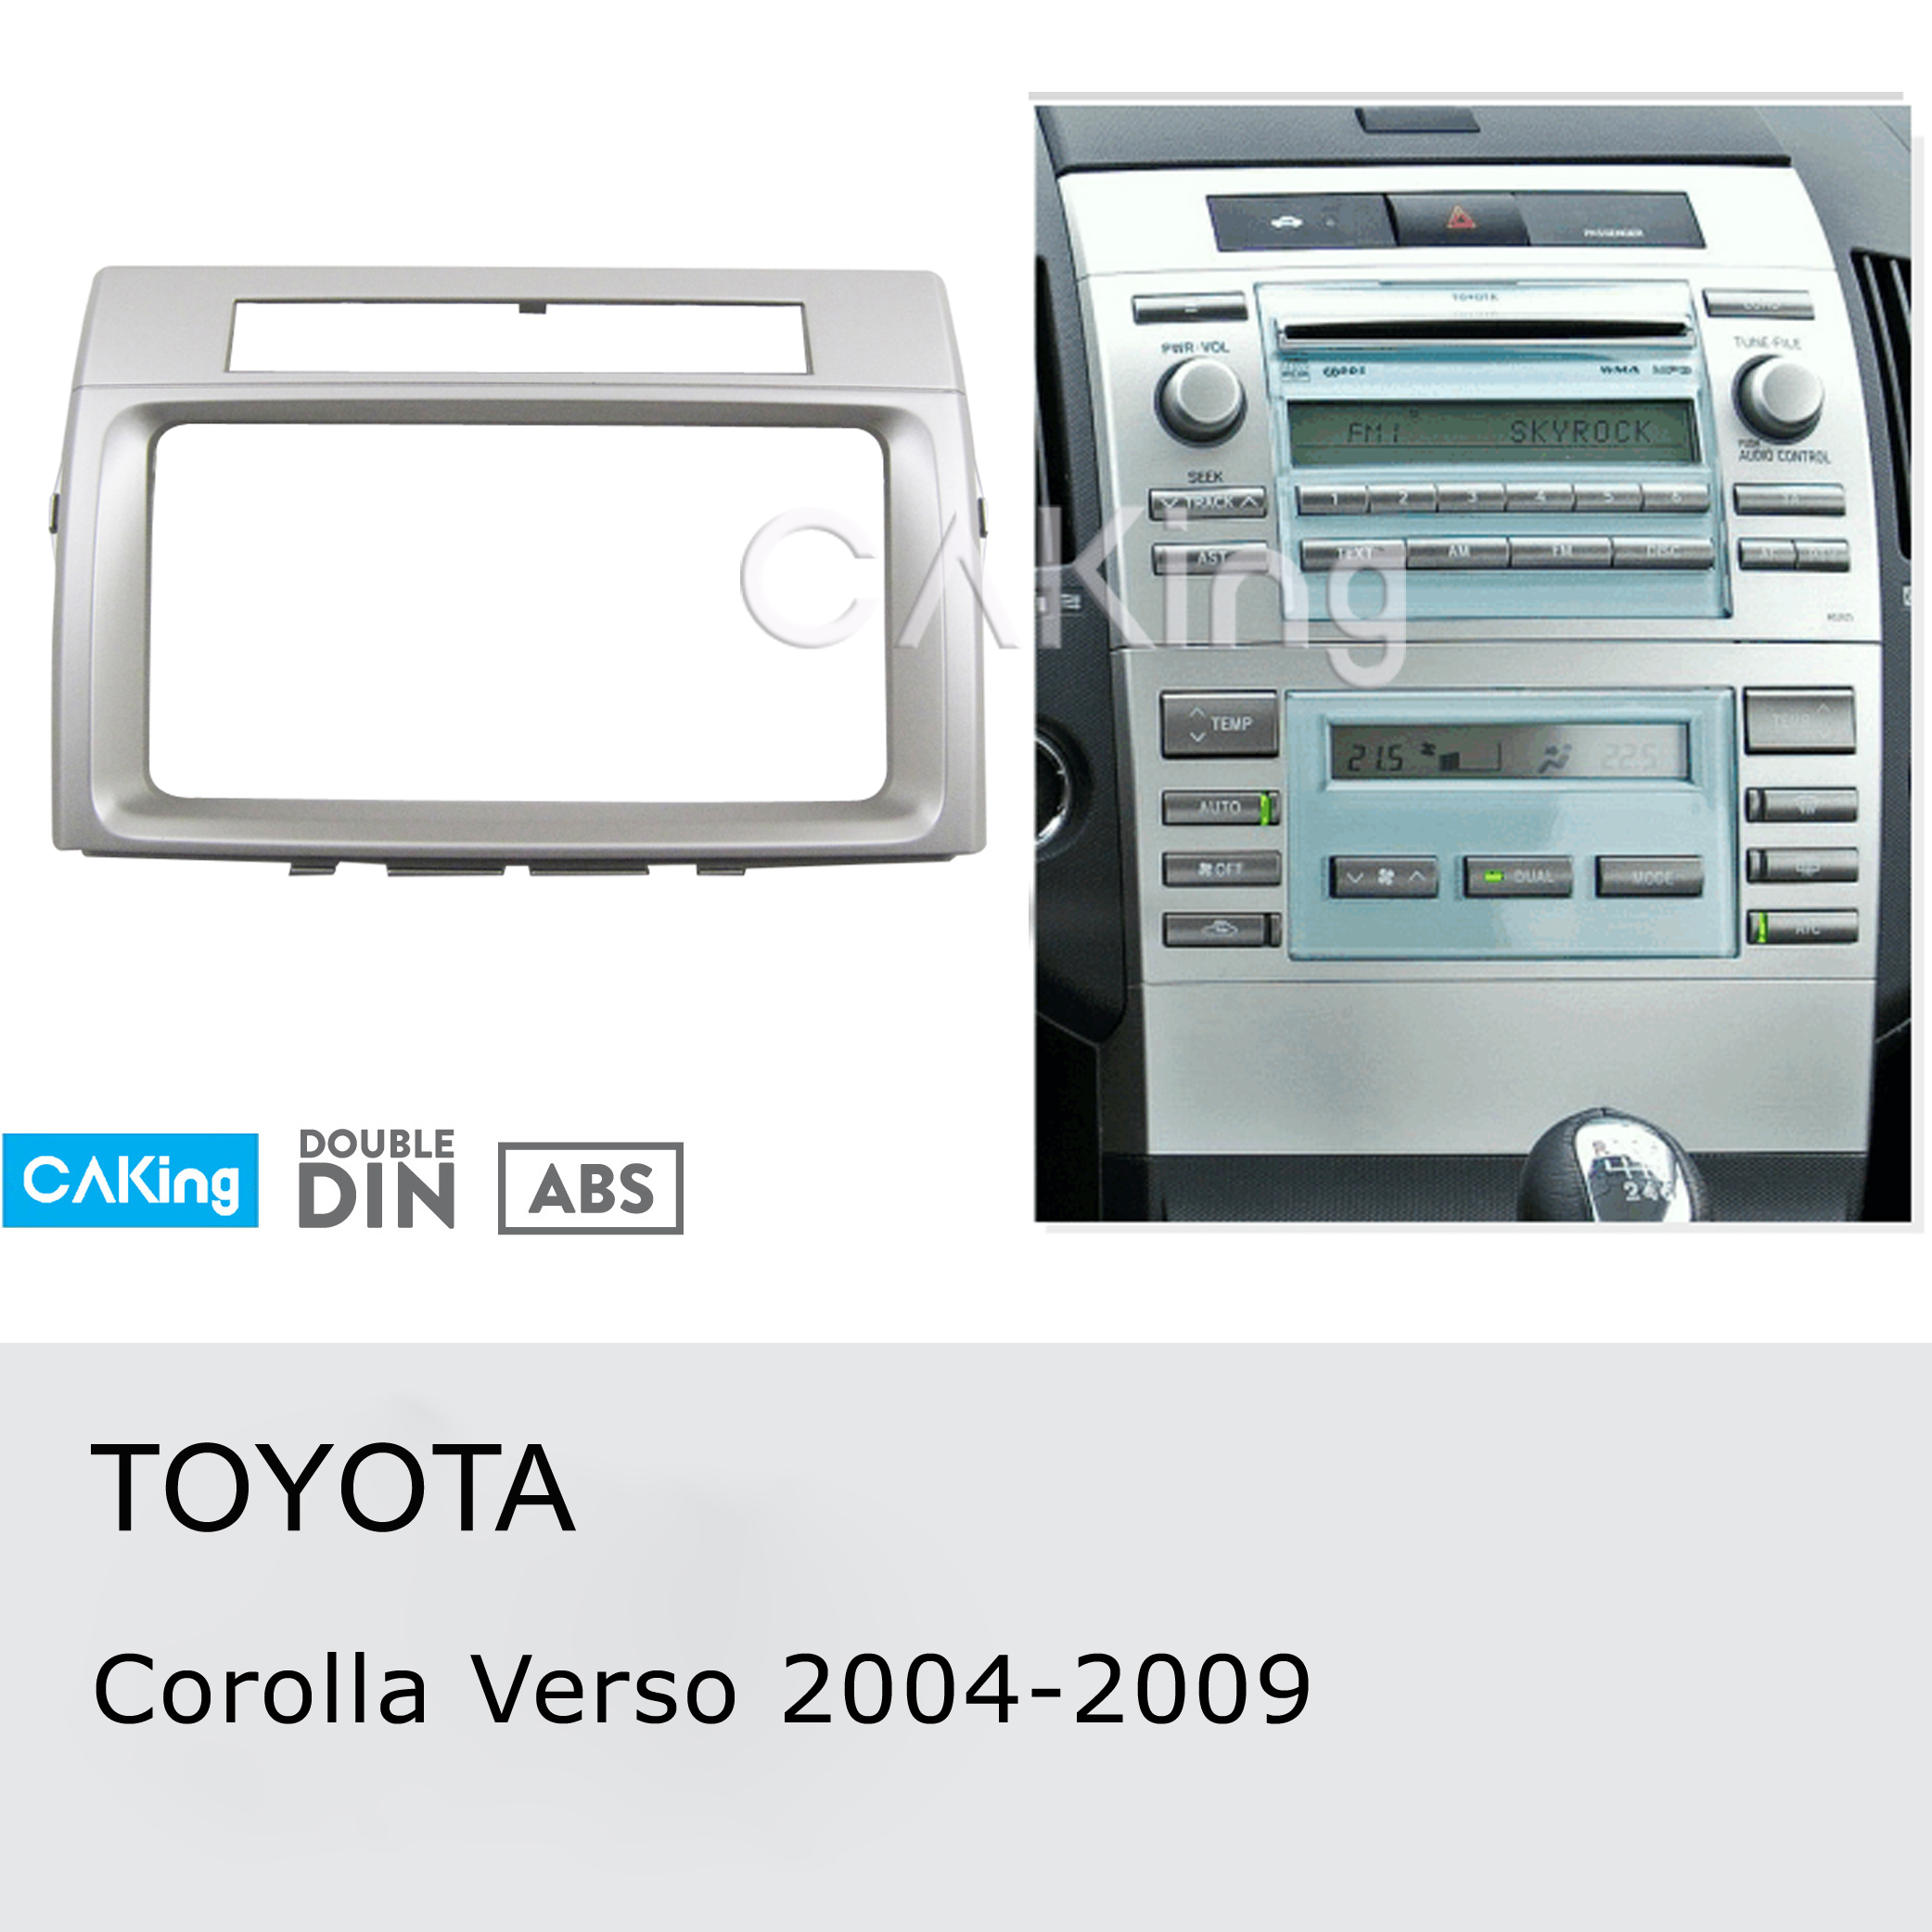 Car Fascia Radio Panel for TOYOTA Corolla Verso 2004 2009 Dash Kit Install Console Facia Plate Bezel Stereo Adapter Cover Trim-in Fascias from Automobiles & Motorcycles    1